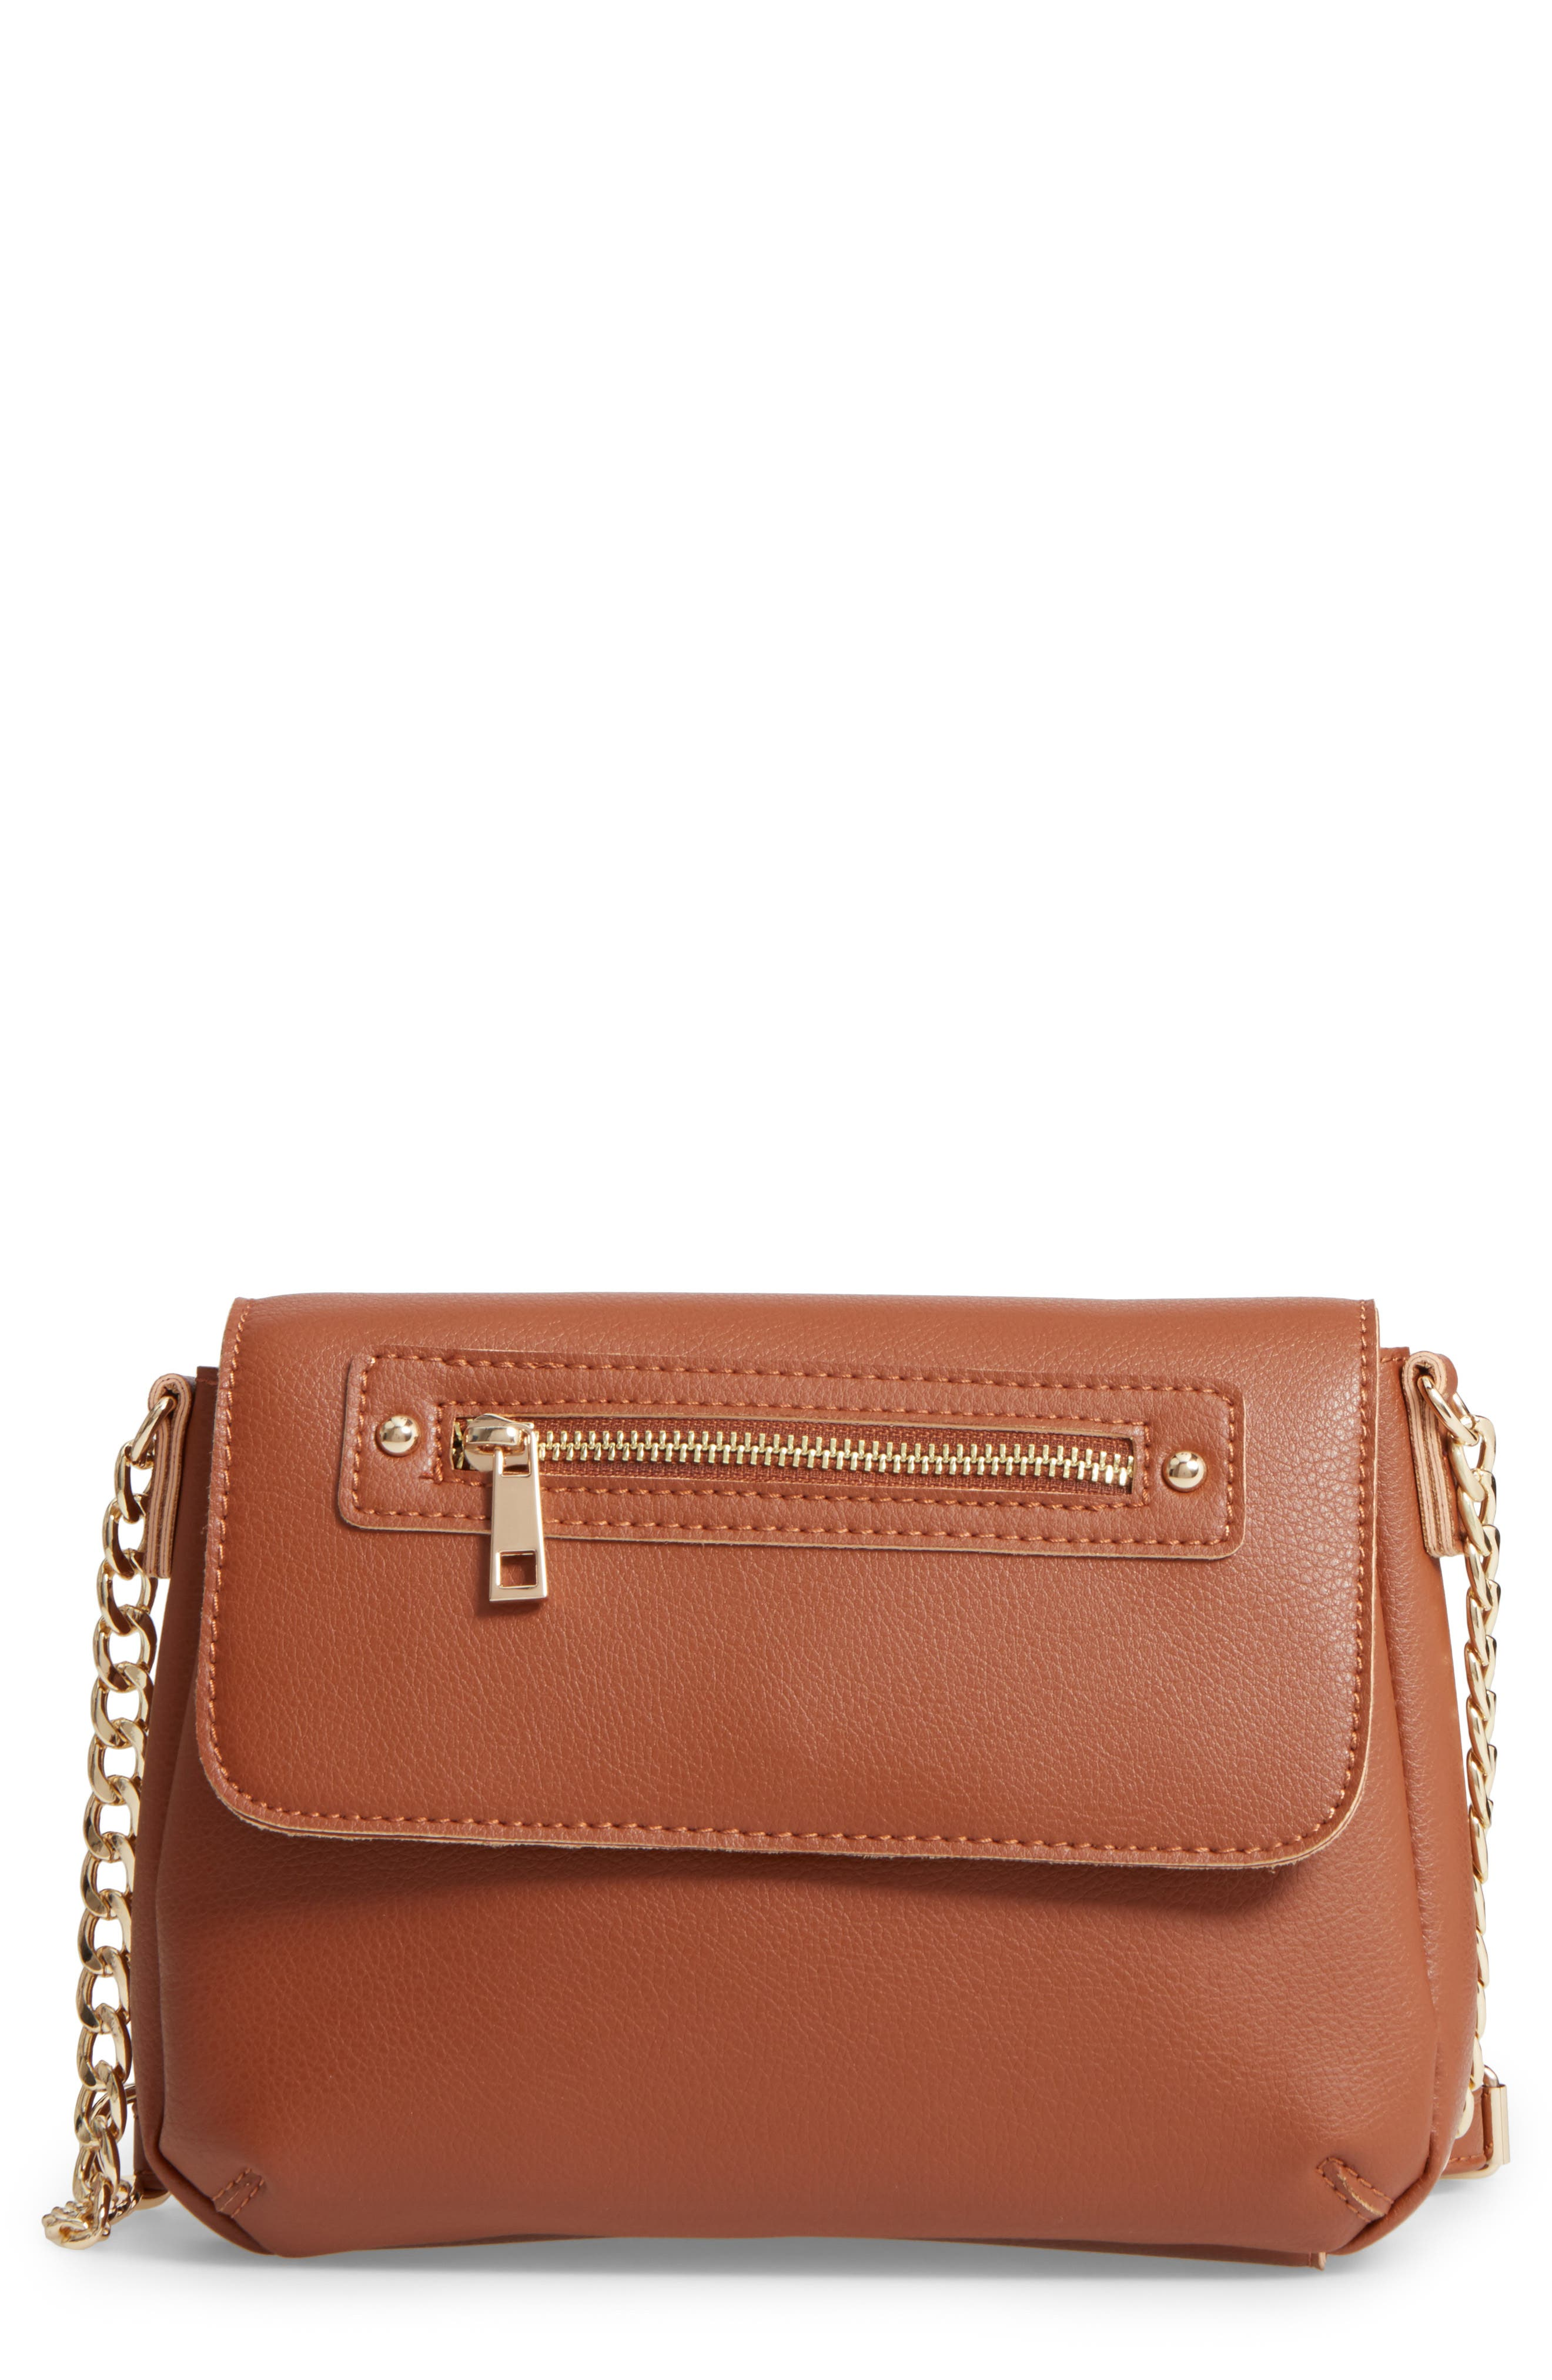 BP. Faux Leather Zip Flap Crossbody Bag